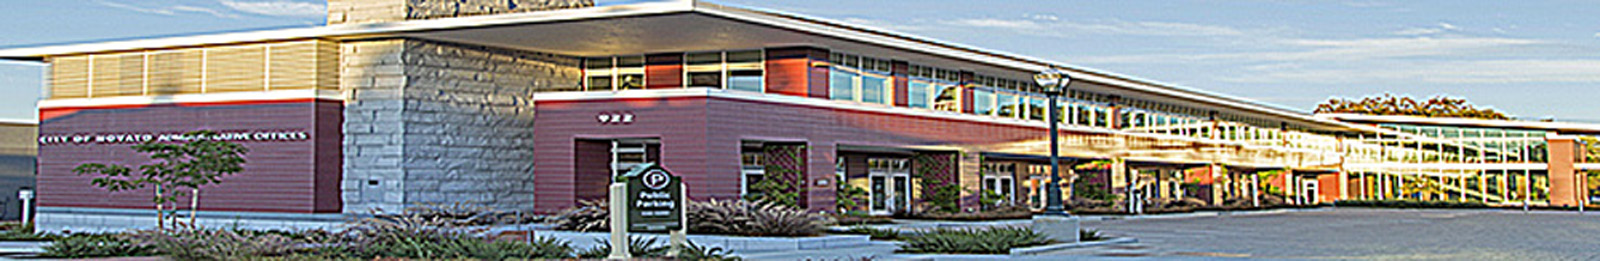 banner photo of Administrative Offices